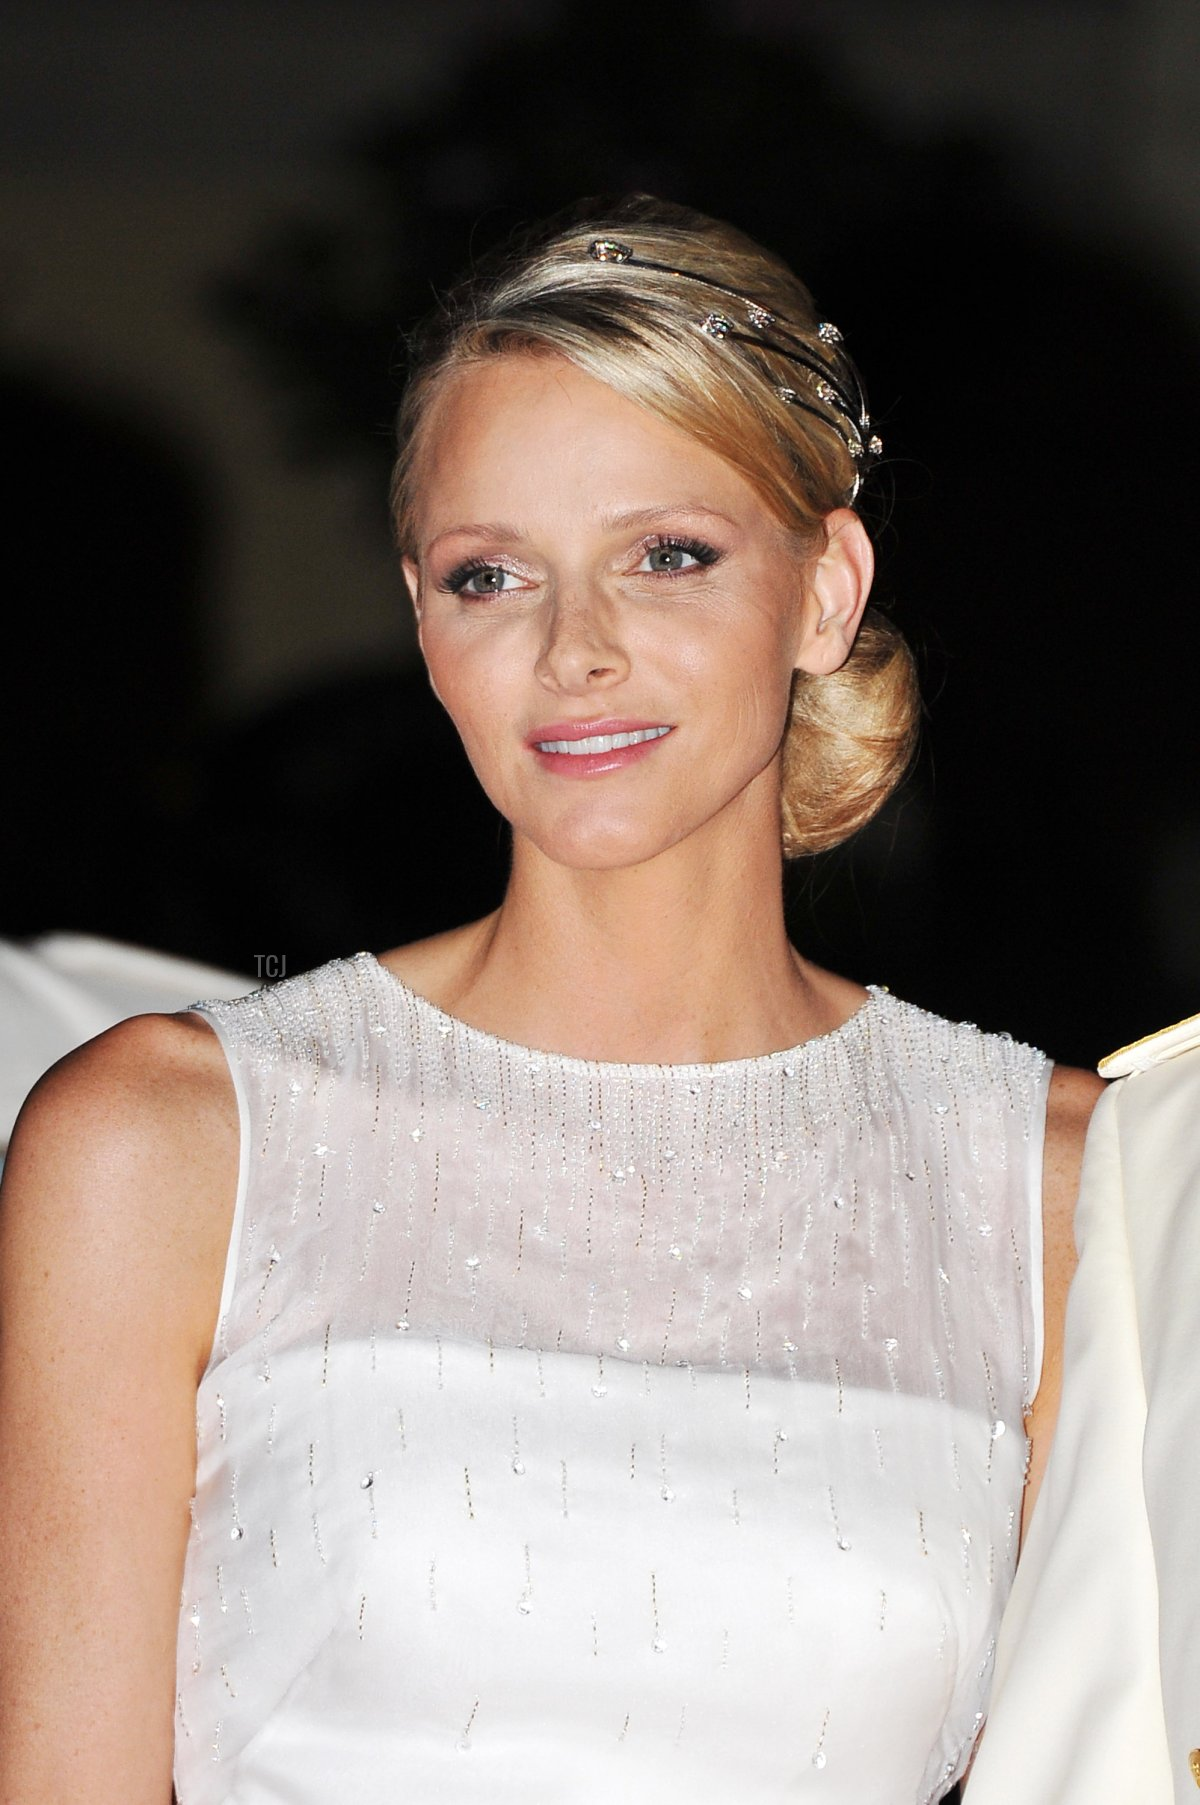 Princess Charlene of Monaco attends a dinner at Opera terraces after their religious wedding ceremony on July 2, 2011 in Monaco